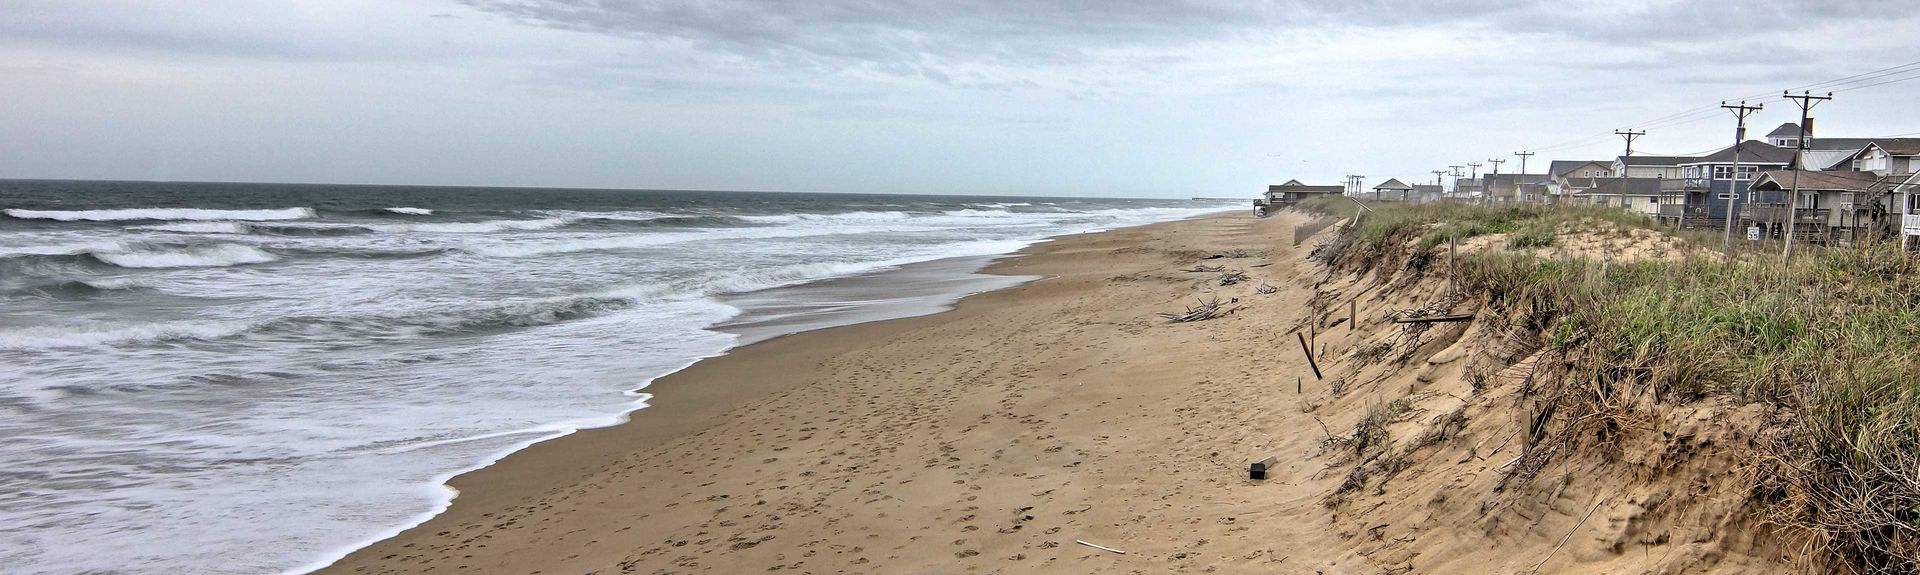 Nags Head Woods Preserve, Kill Devil Hills, North Carolina, USA